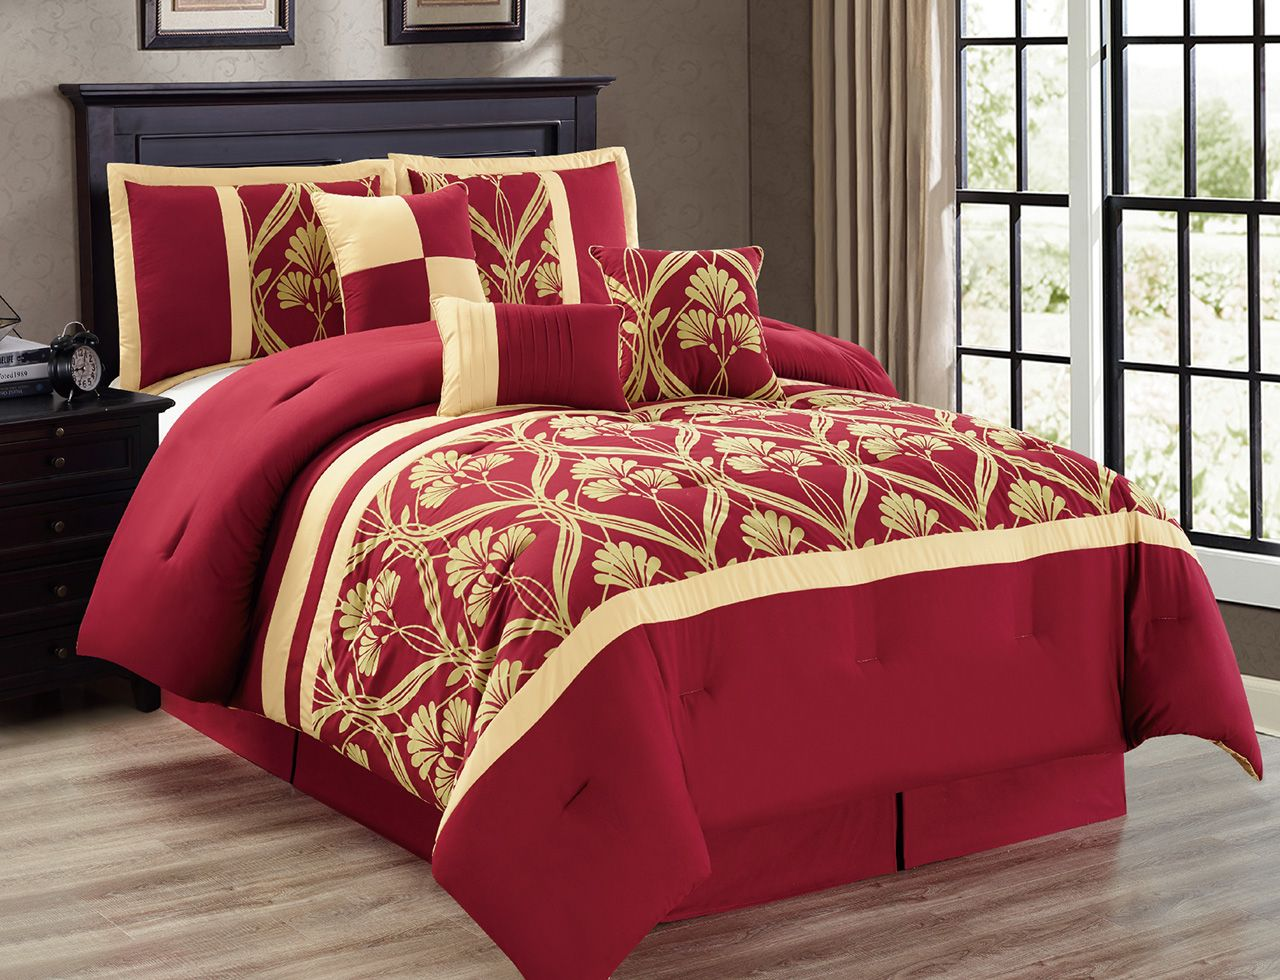 bag com bedding sizes plaid red piece grey plus sets in bed ip a maroon walmart multiple comforter set mainstays